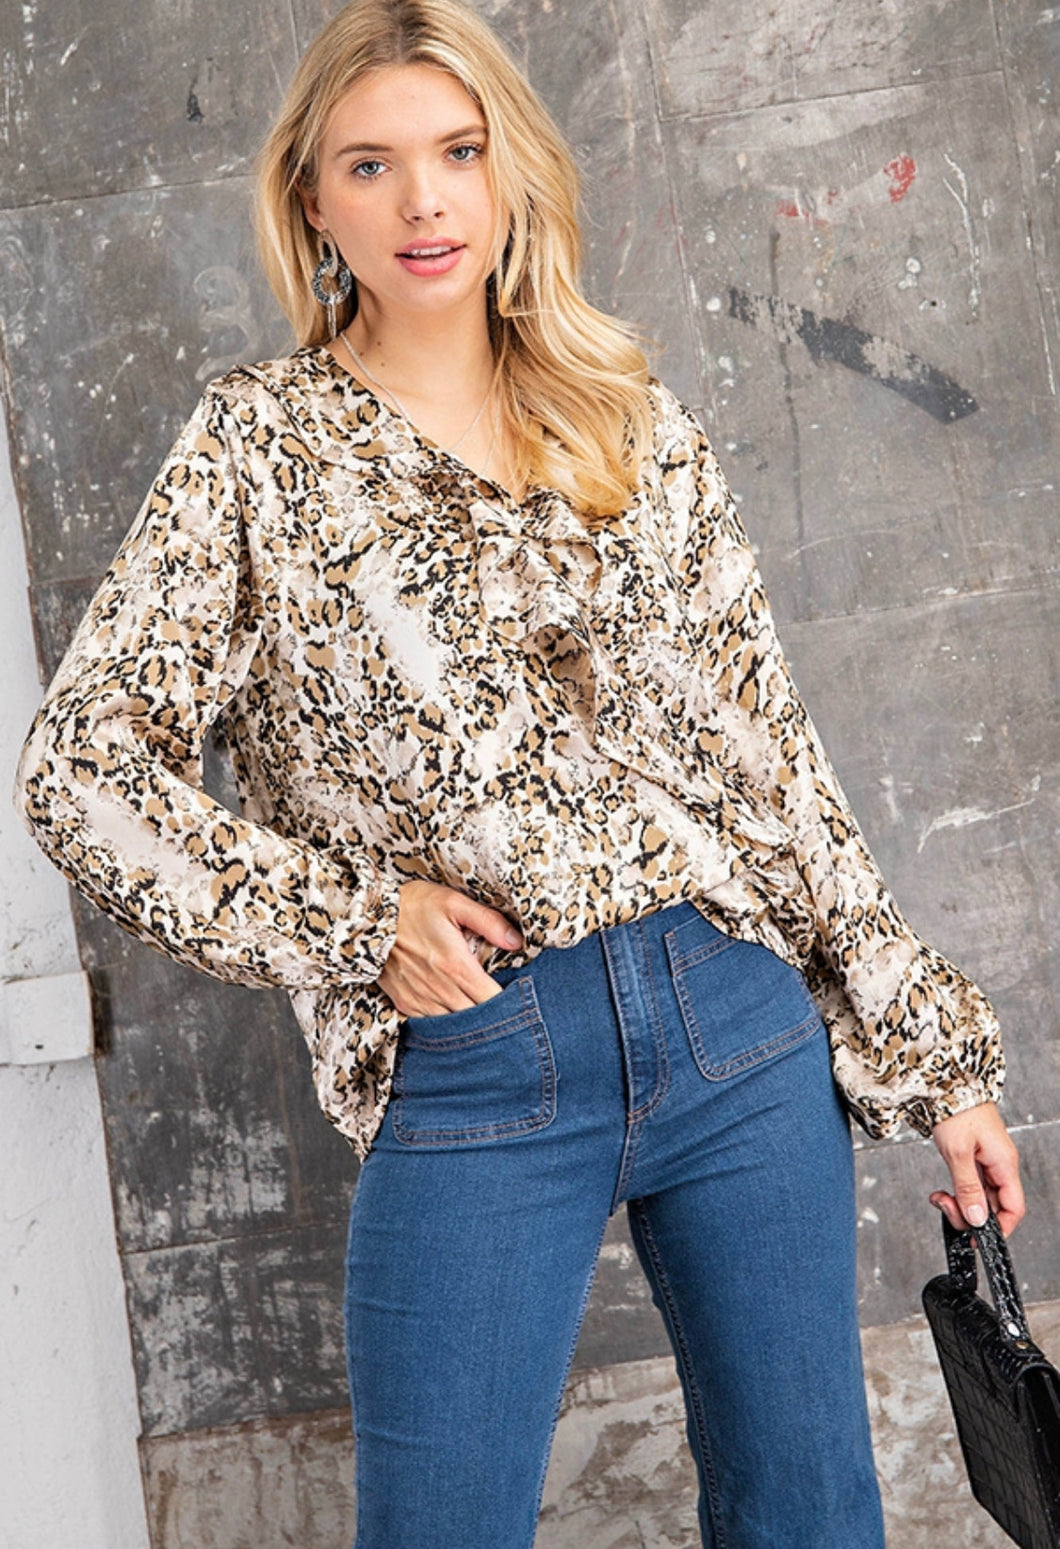 RUFFLED SNAKE PRINNTED TOP